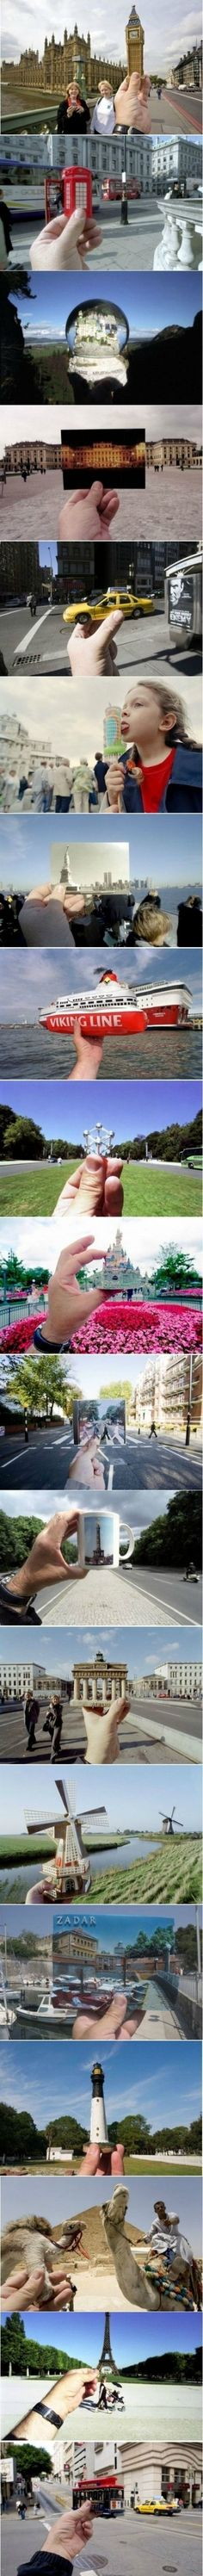 I should have done this when I went to all these places.... I'll remember this for next time <3